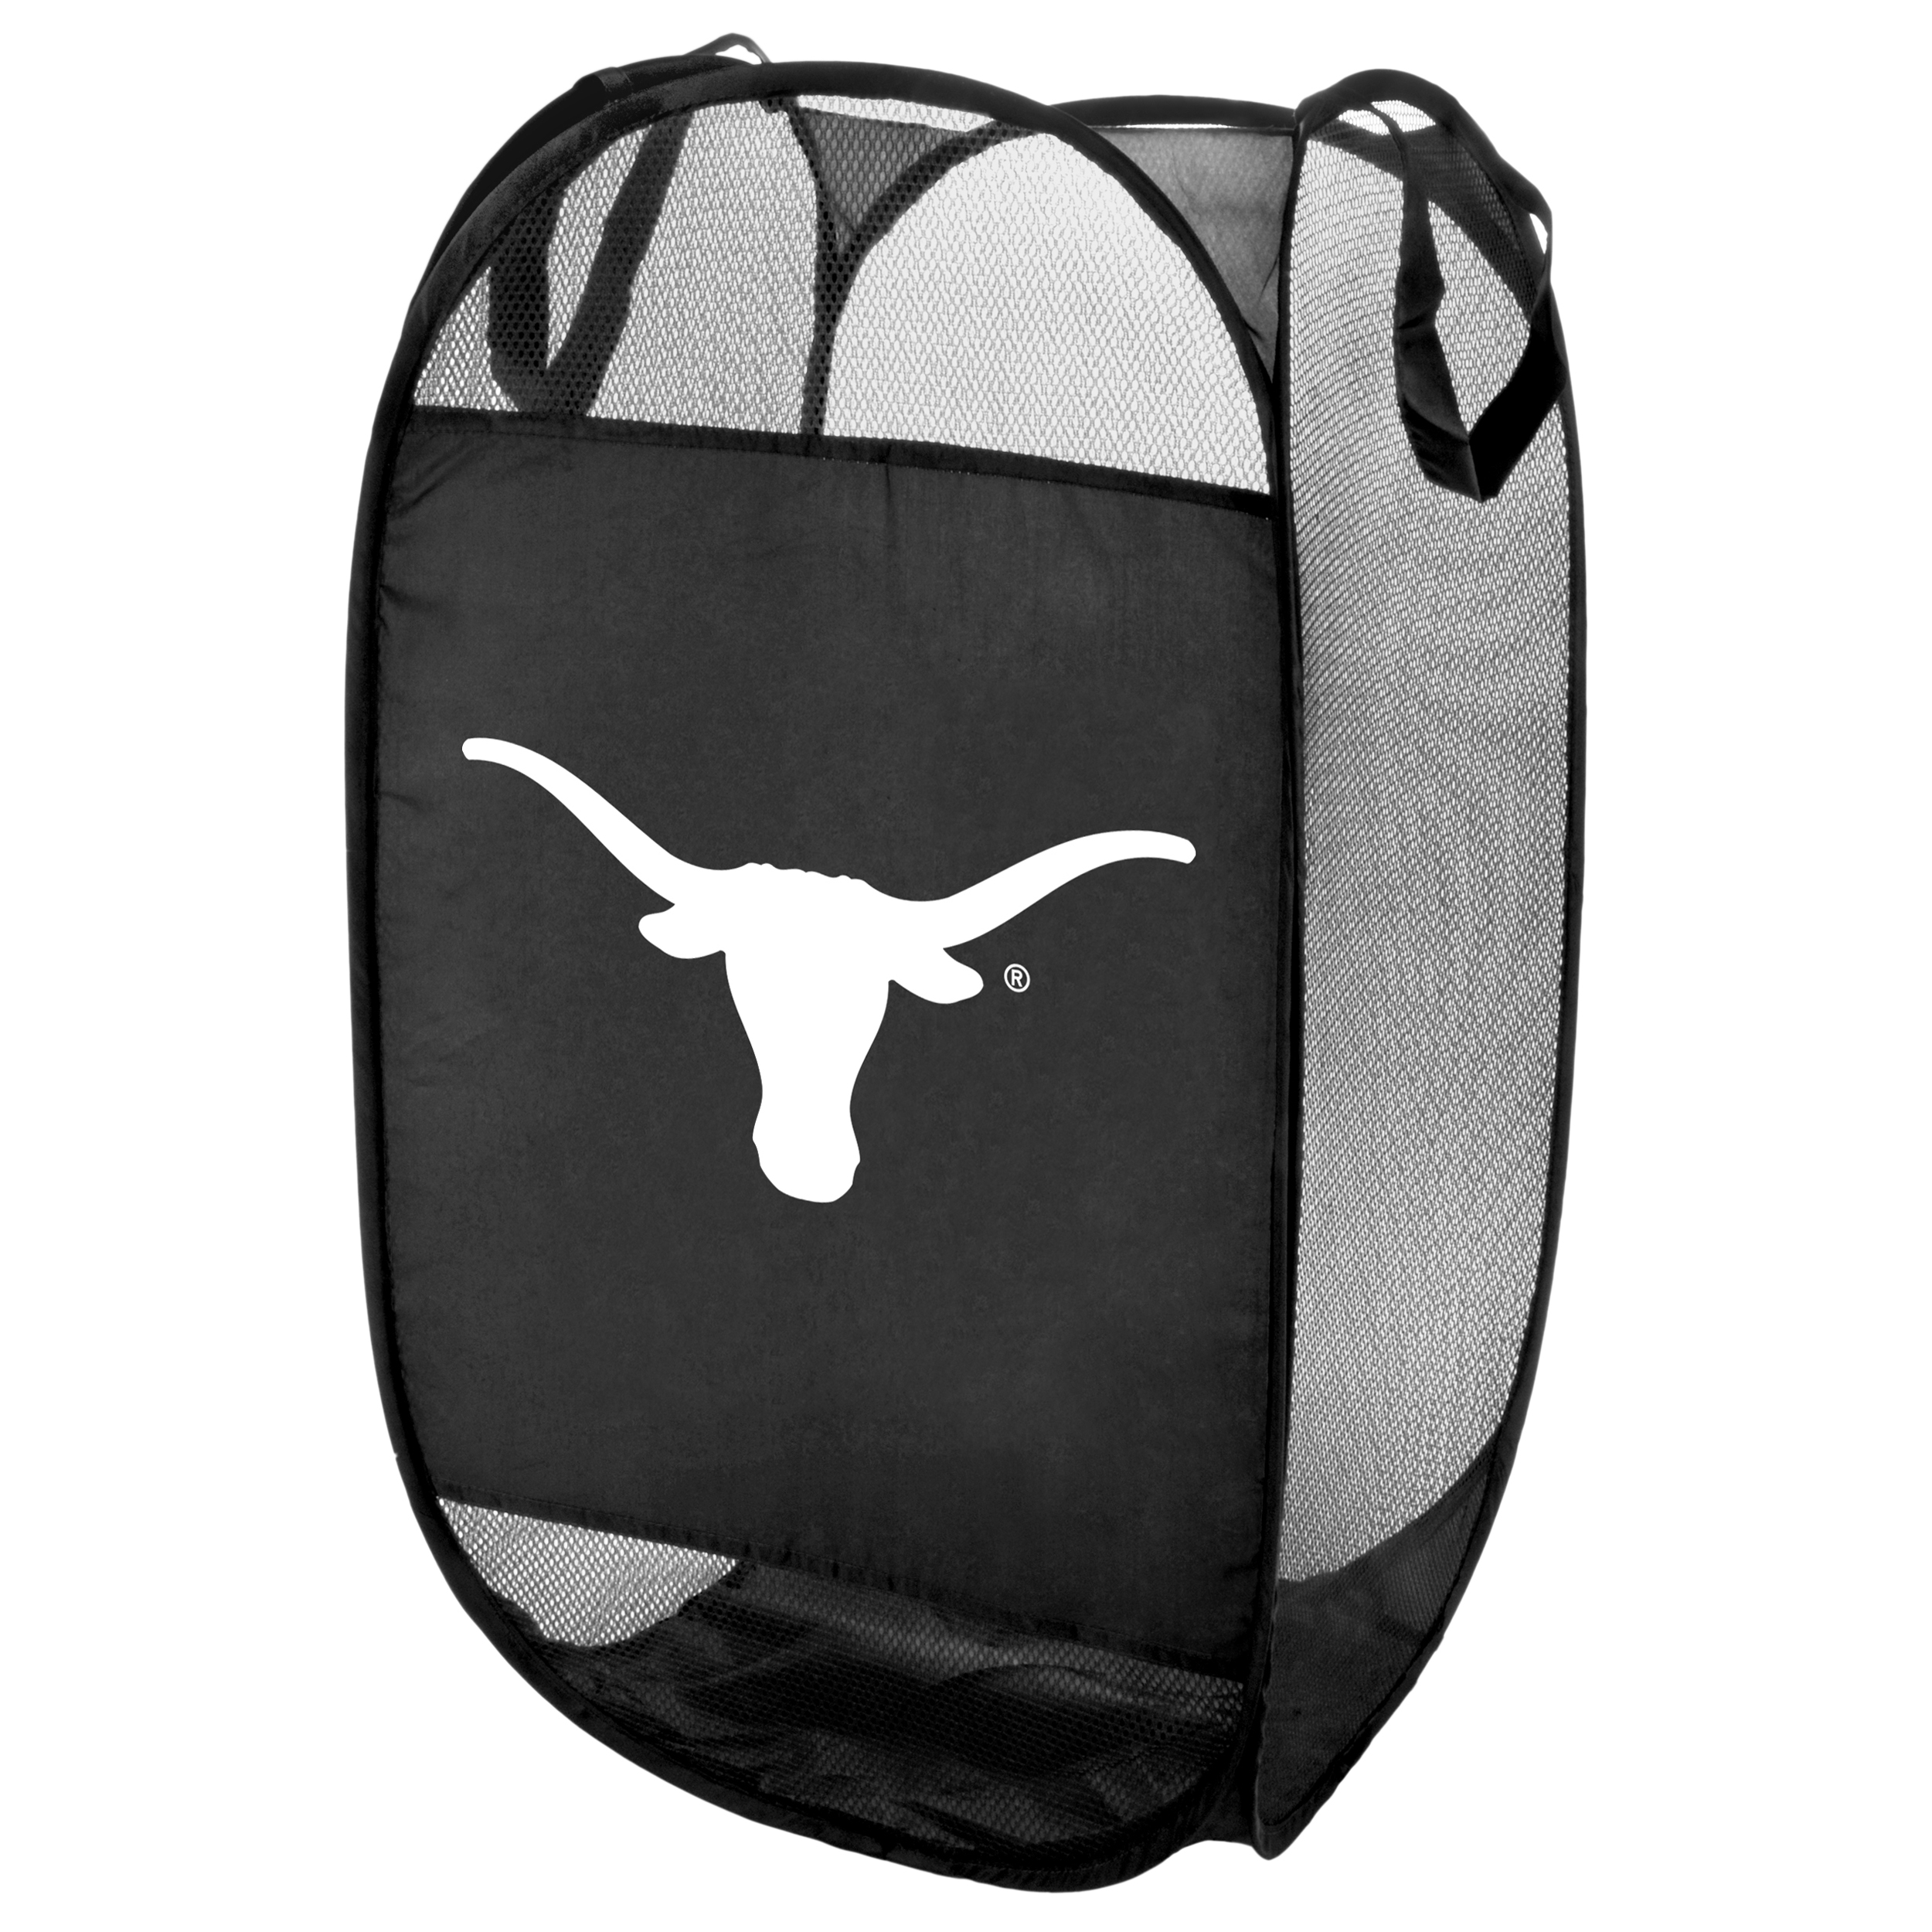 Texas Longhorns Official NCAA Laundry Hamper Fold Up Flip Open by Forever Collectibles 069836